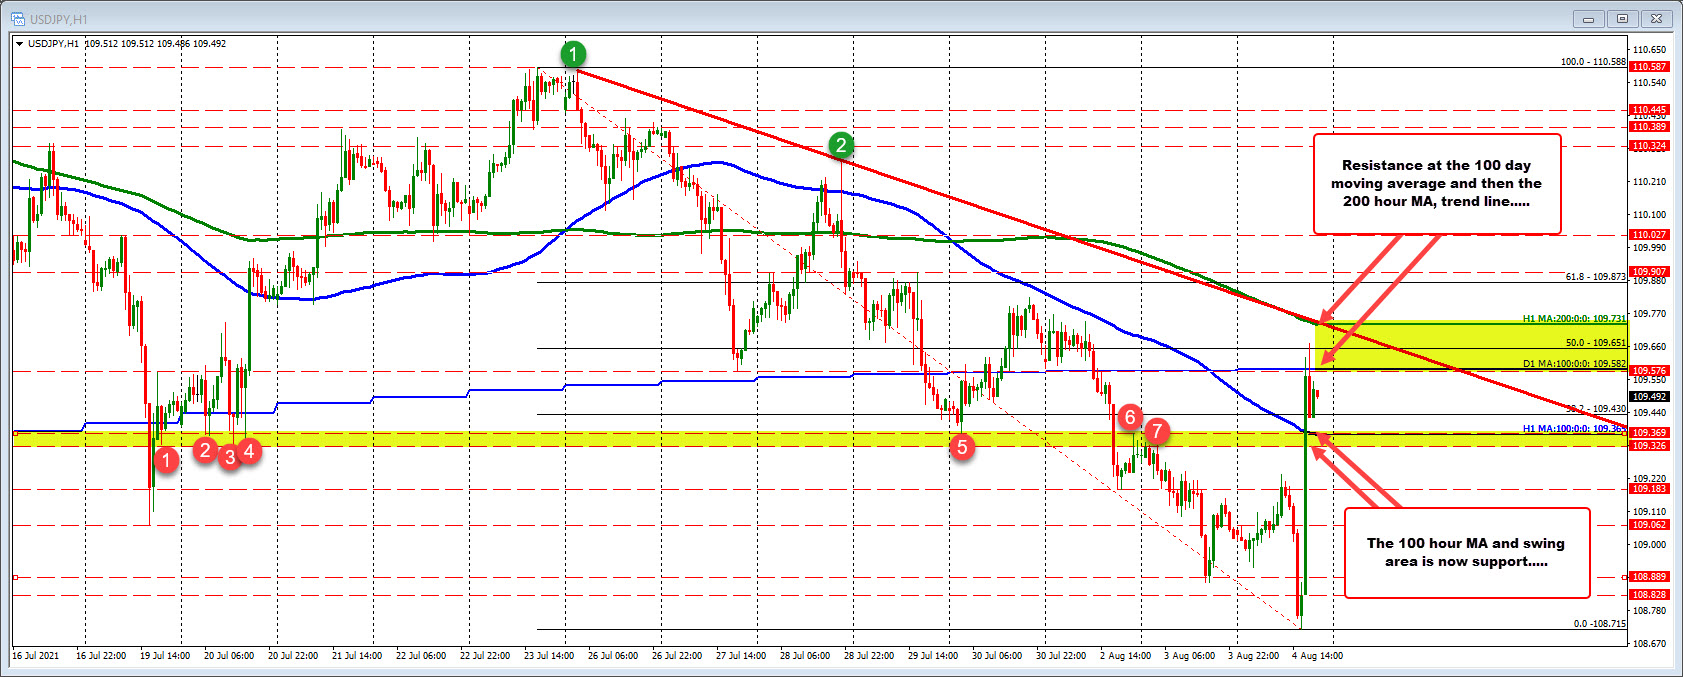 100 and 200 hour moving averages and the100 day moving average are all in play in the USDJPY